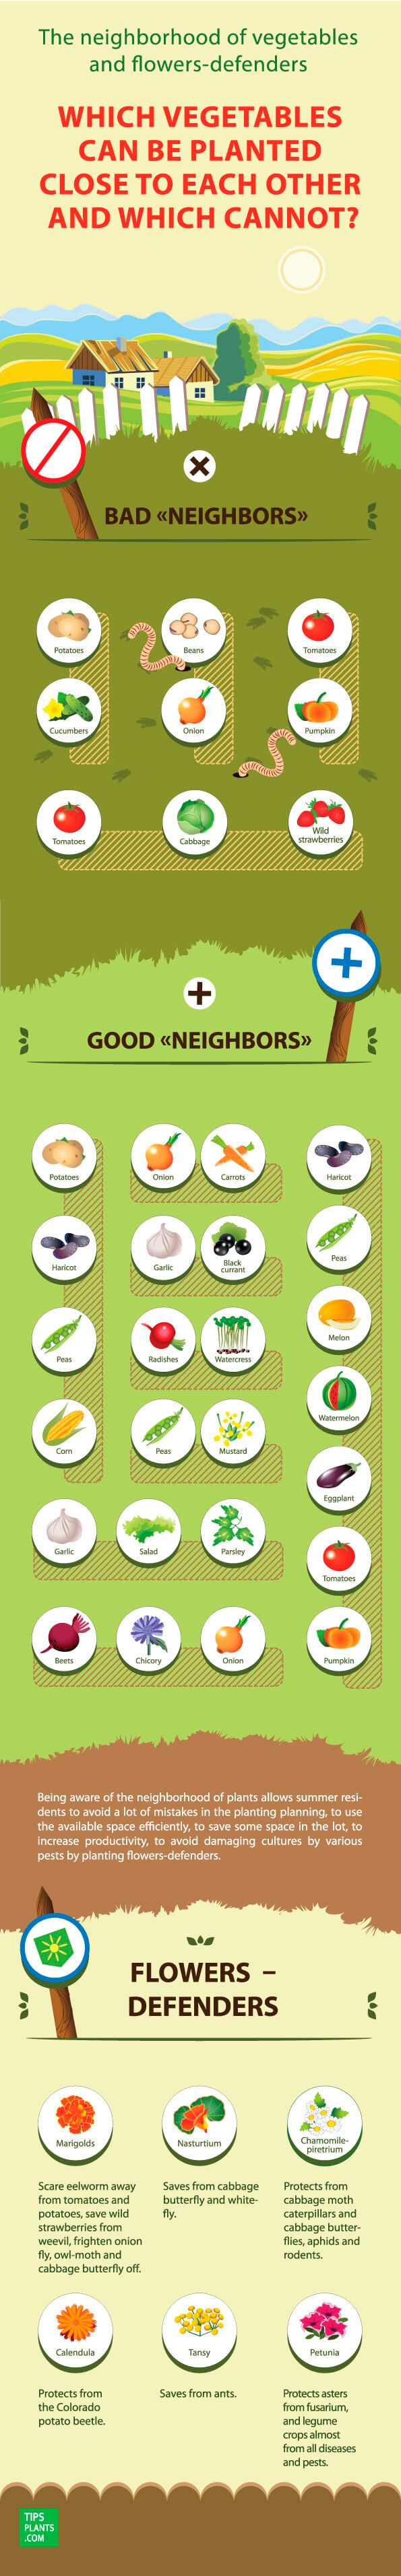 18 Most Important Rules of Companion of Plants and Vegetables in The Garden #infographic #Gardening #Food